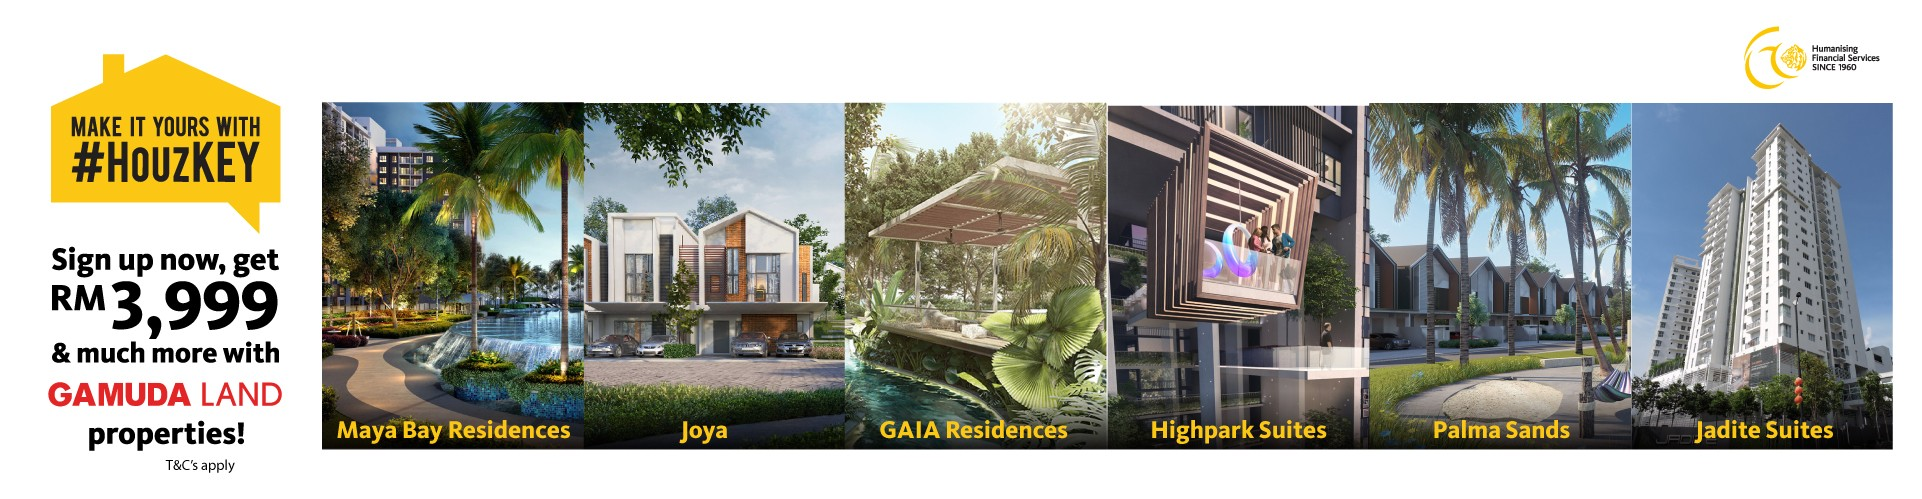 Get RM3,999 & much more for Gamuda Properties this October 2020!